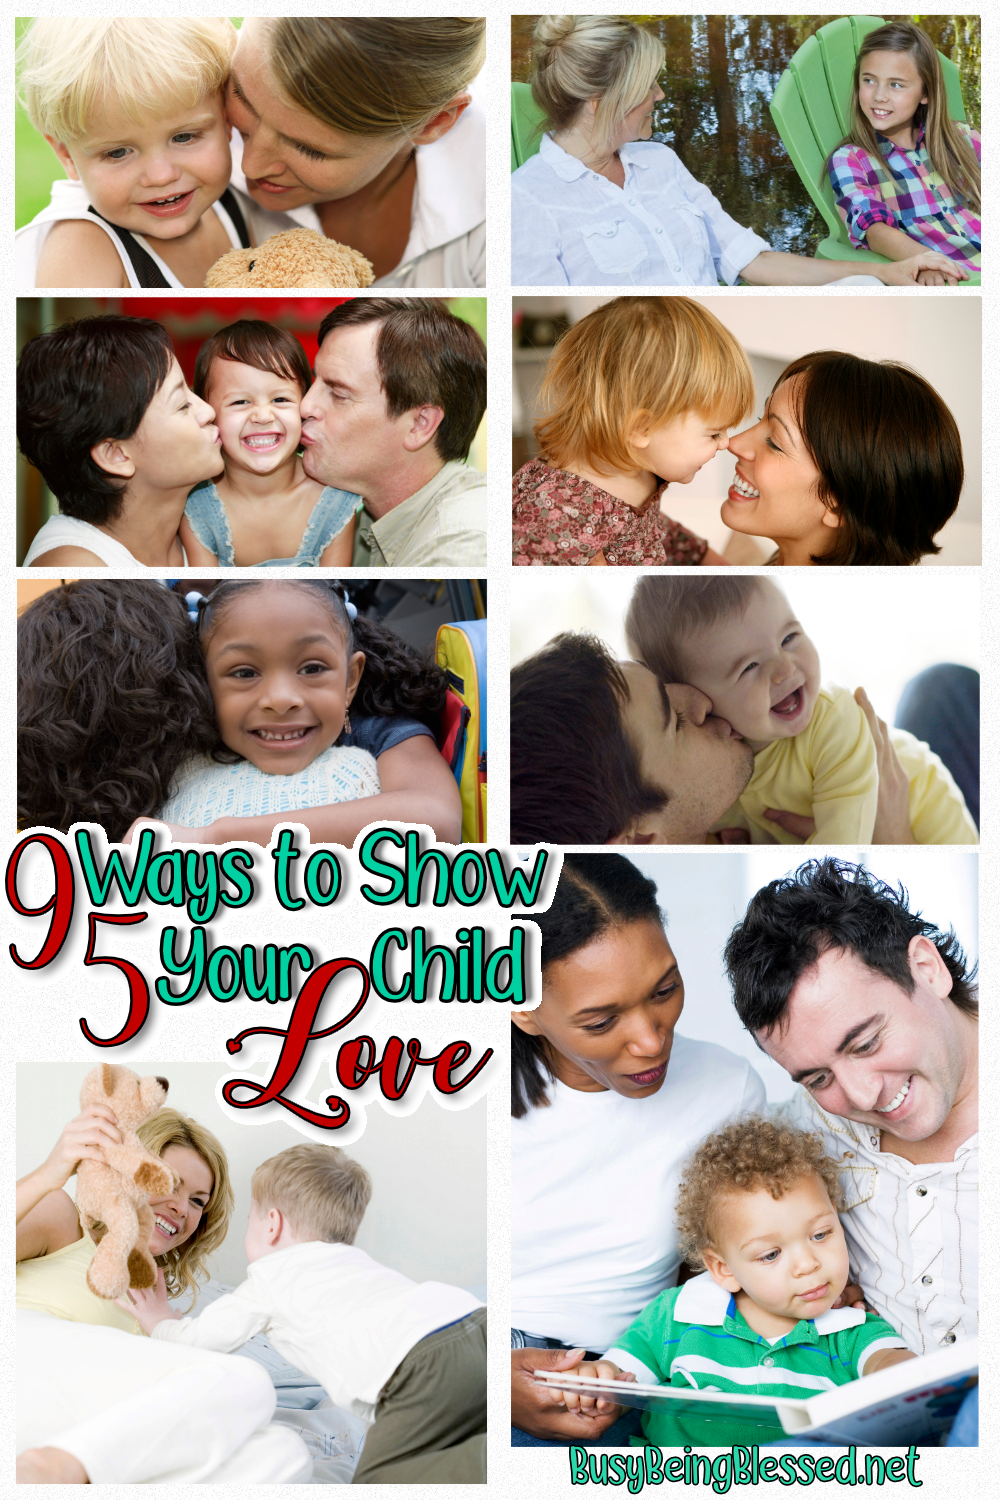 95 ways to show your child love. In honor of my youngest's fifth birthday today (crazy!), a list of ways to show your child that you love him.